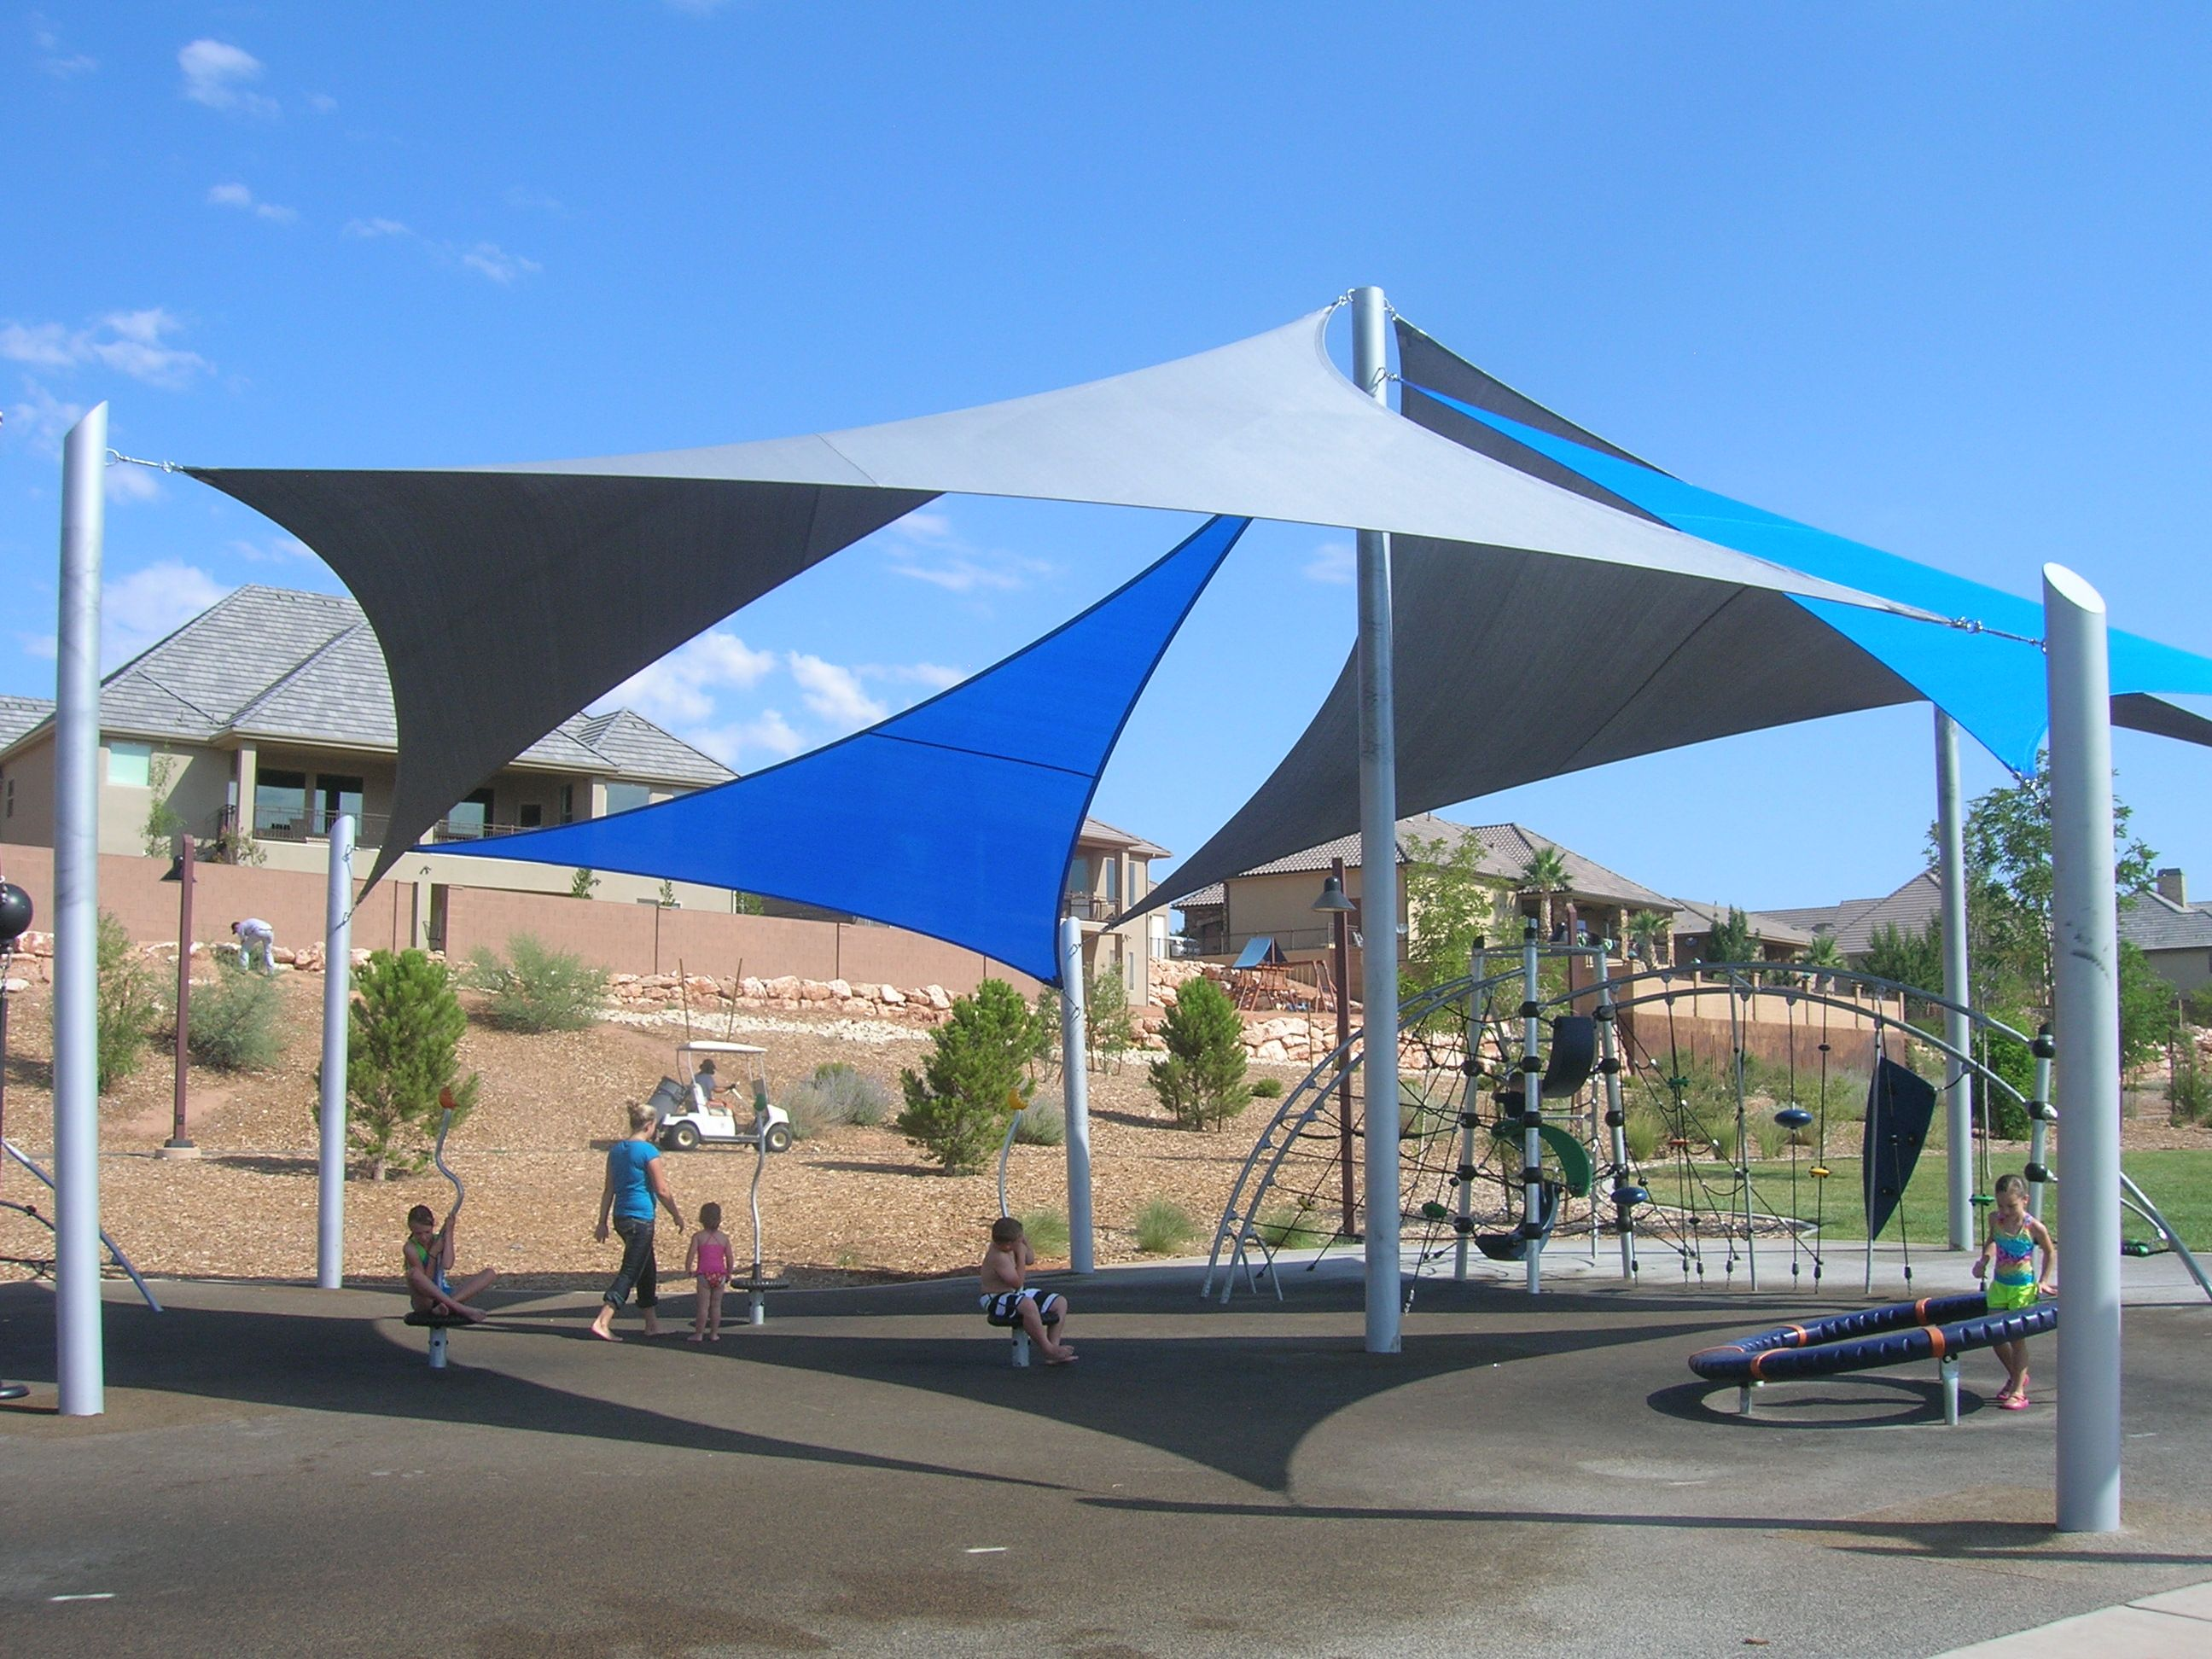 Shade sails fields park st george ut wicked shade for Sun shade structure